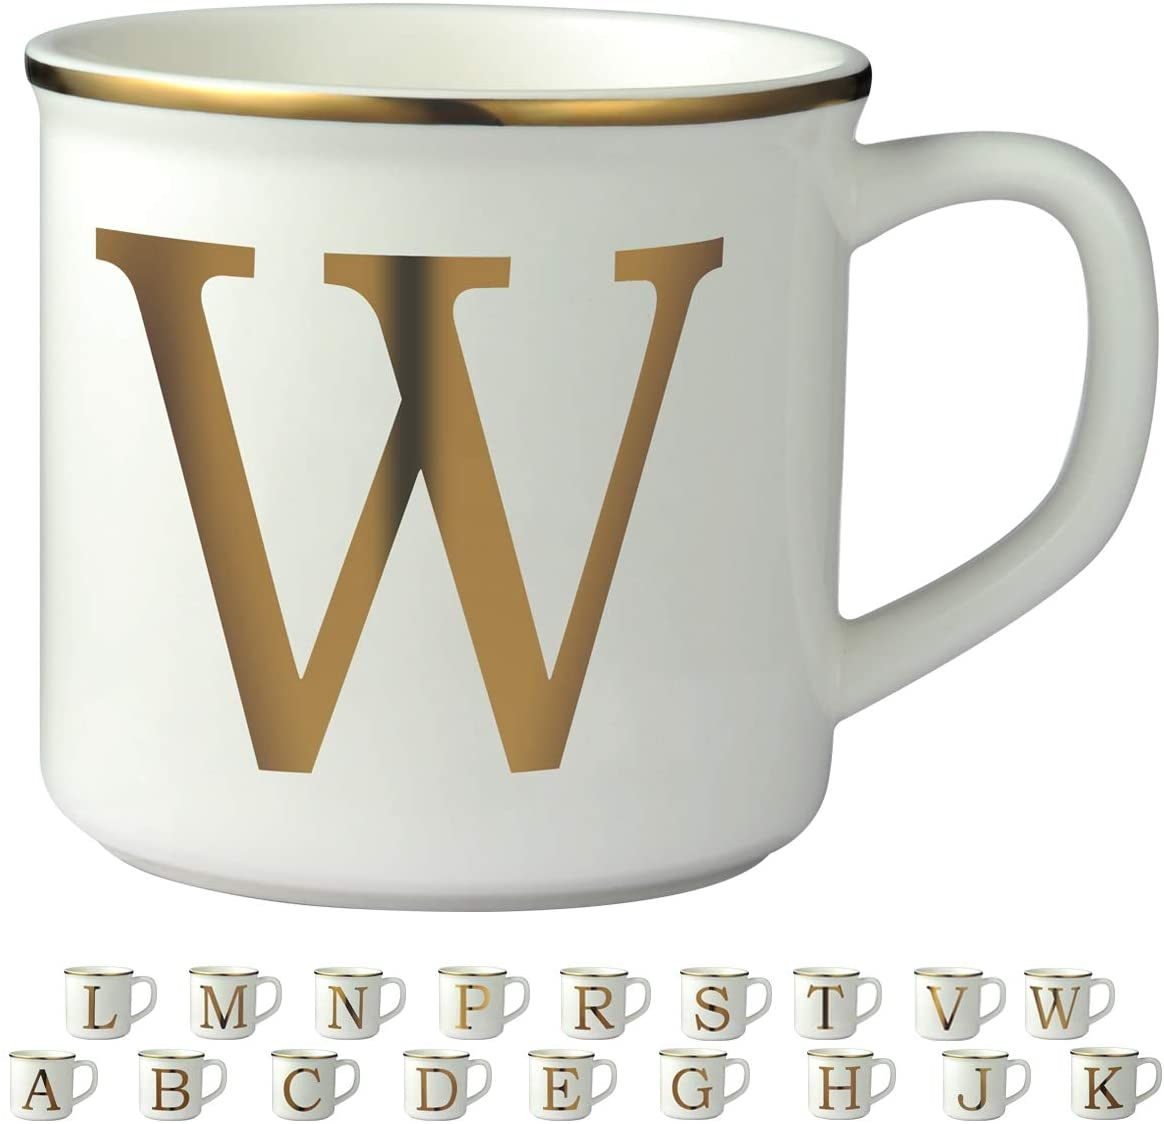 Miicol Gold Initial 16 OZ Large Ceramic Coffee Mug Tea Cup for Office and Home Use, Perfect Monogram Gifting or Collecting, Letter W, White